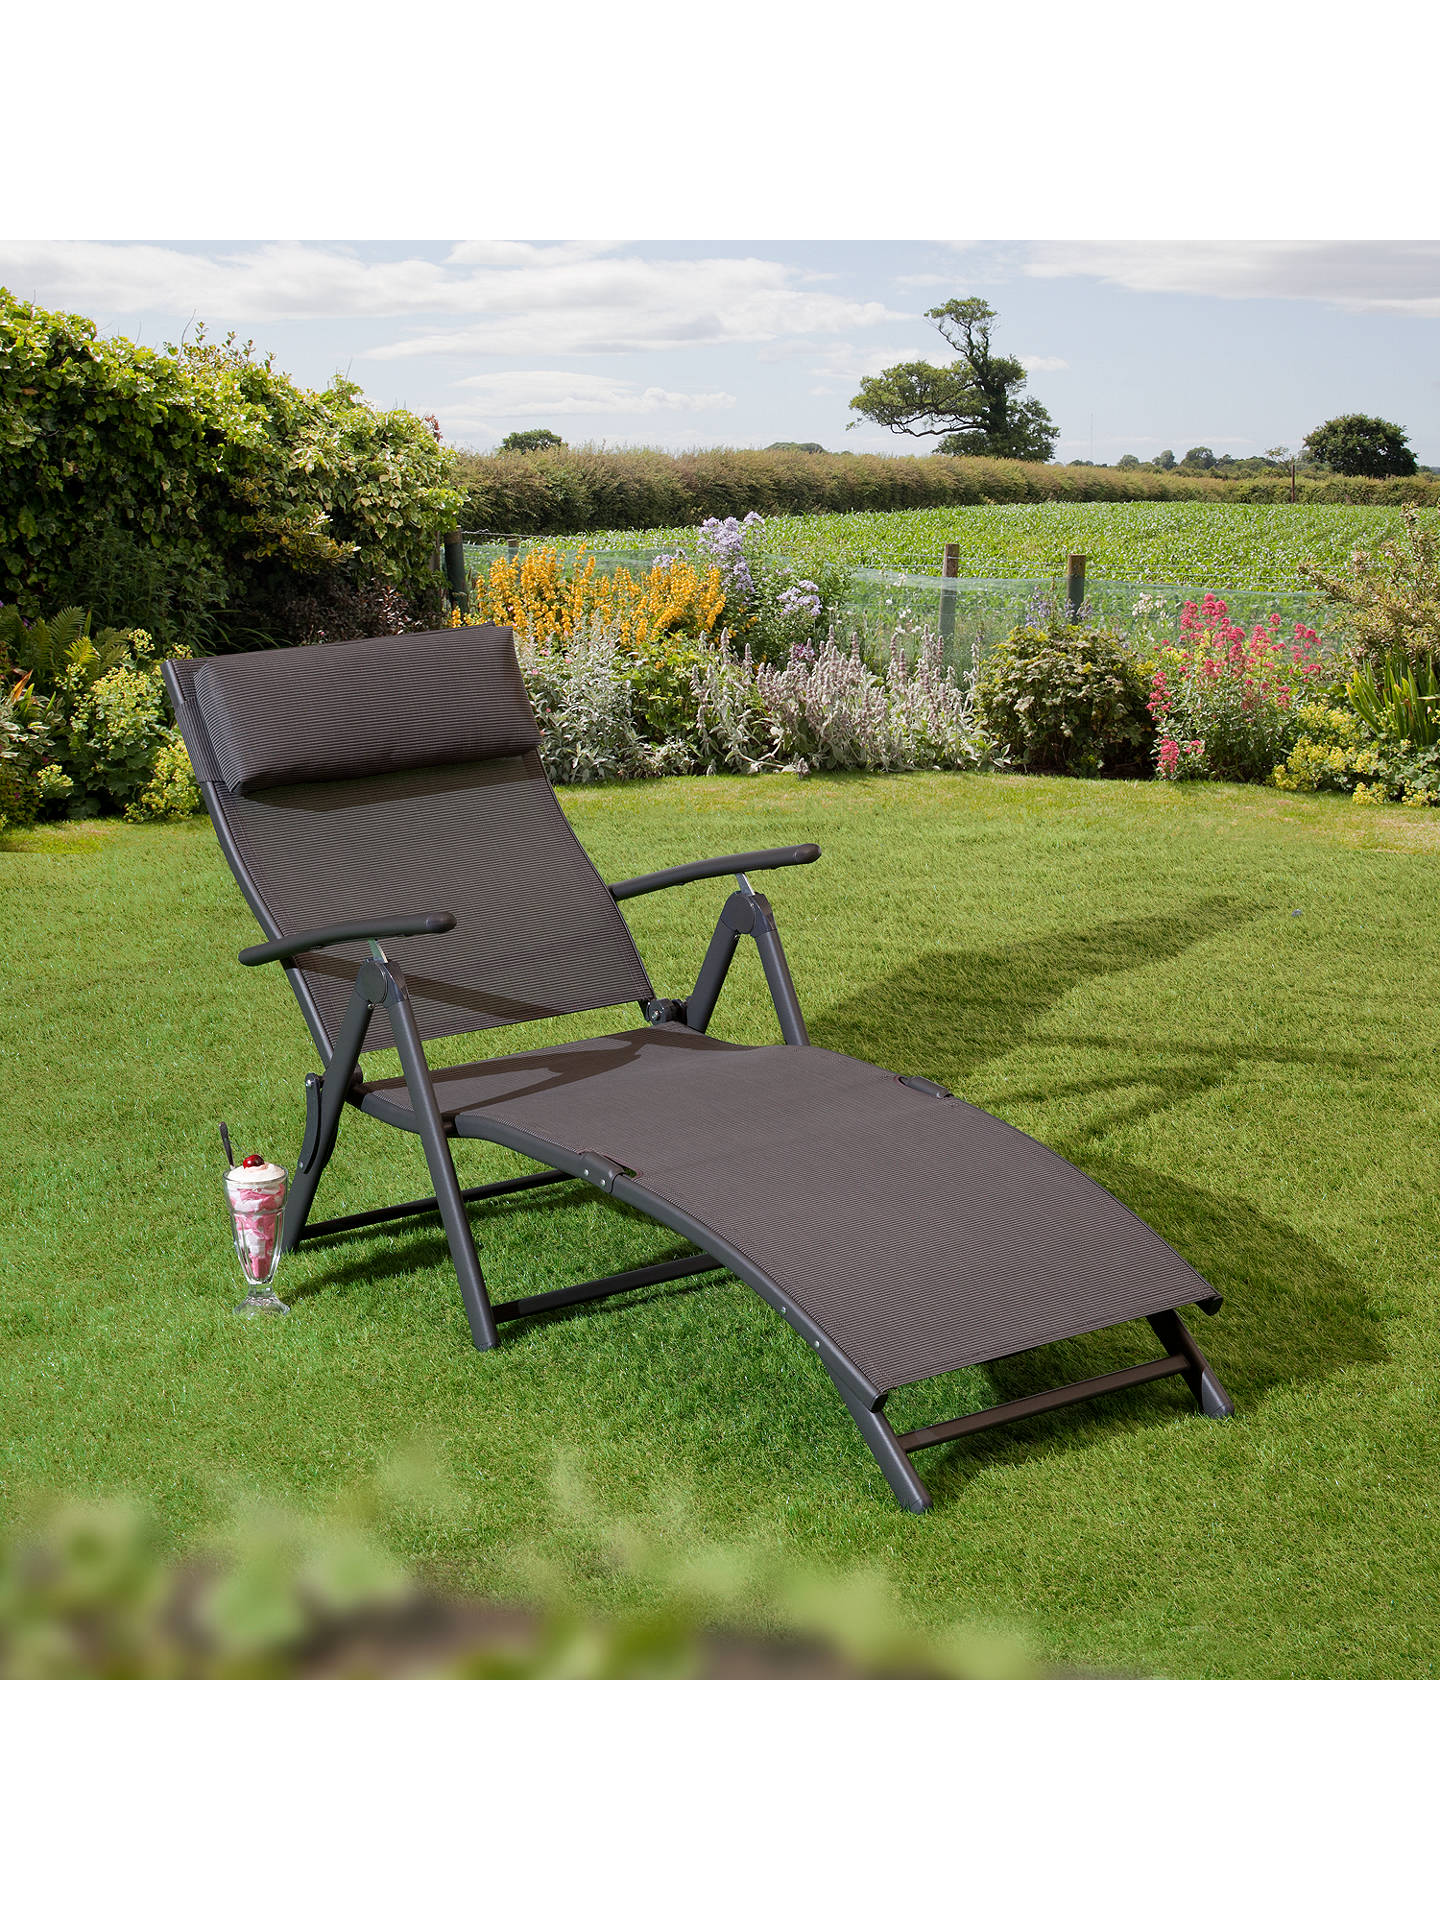 Buy Suntime Havana Sun Lounger, Charcoal Online at johnlewis.com